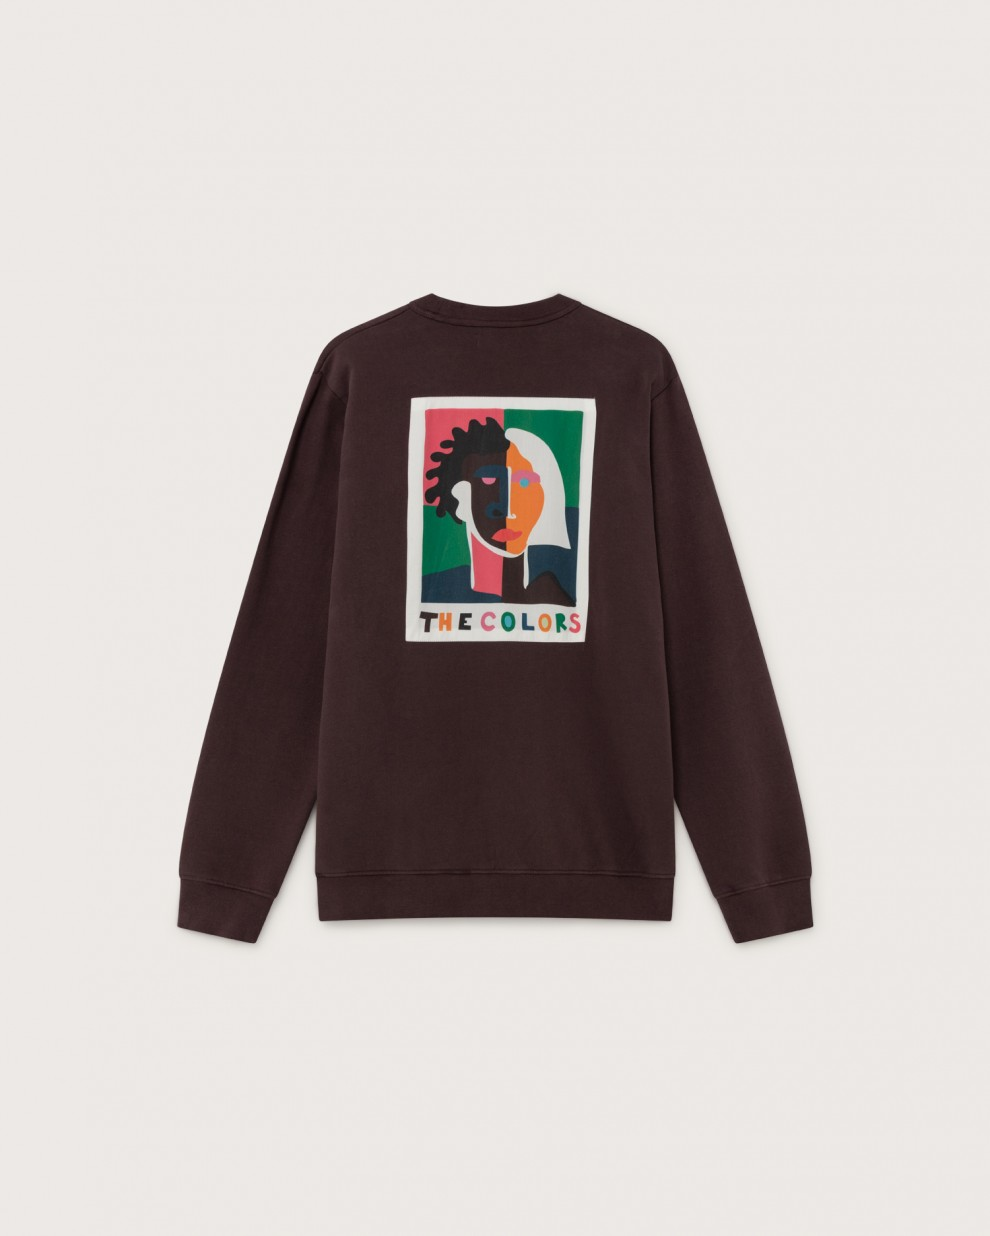 THE COLORS SWEATSHIRT